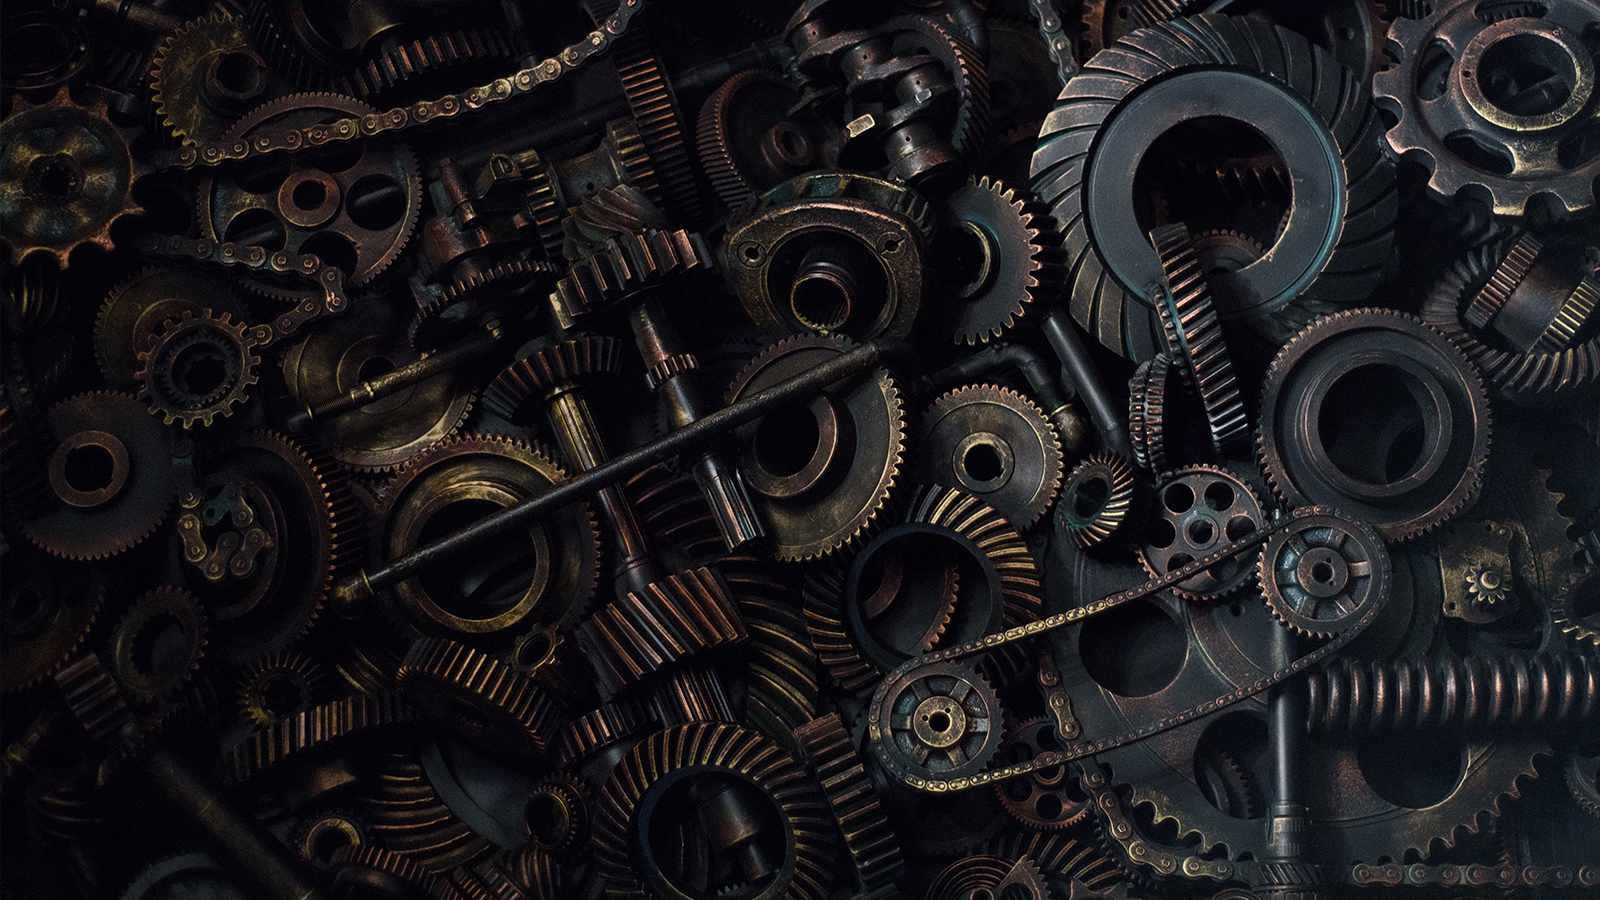 Close up image of cogs and mechanical chains